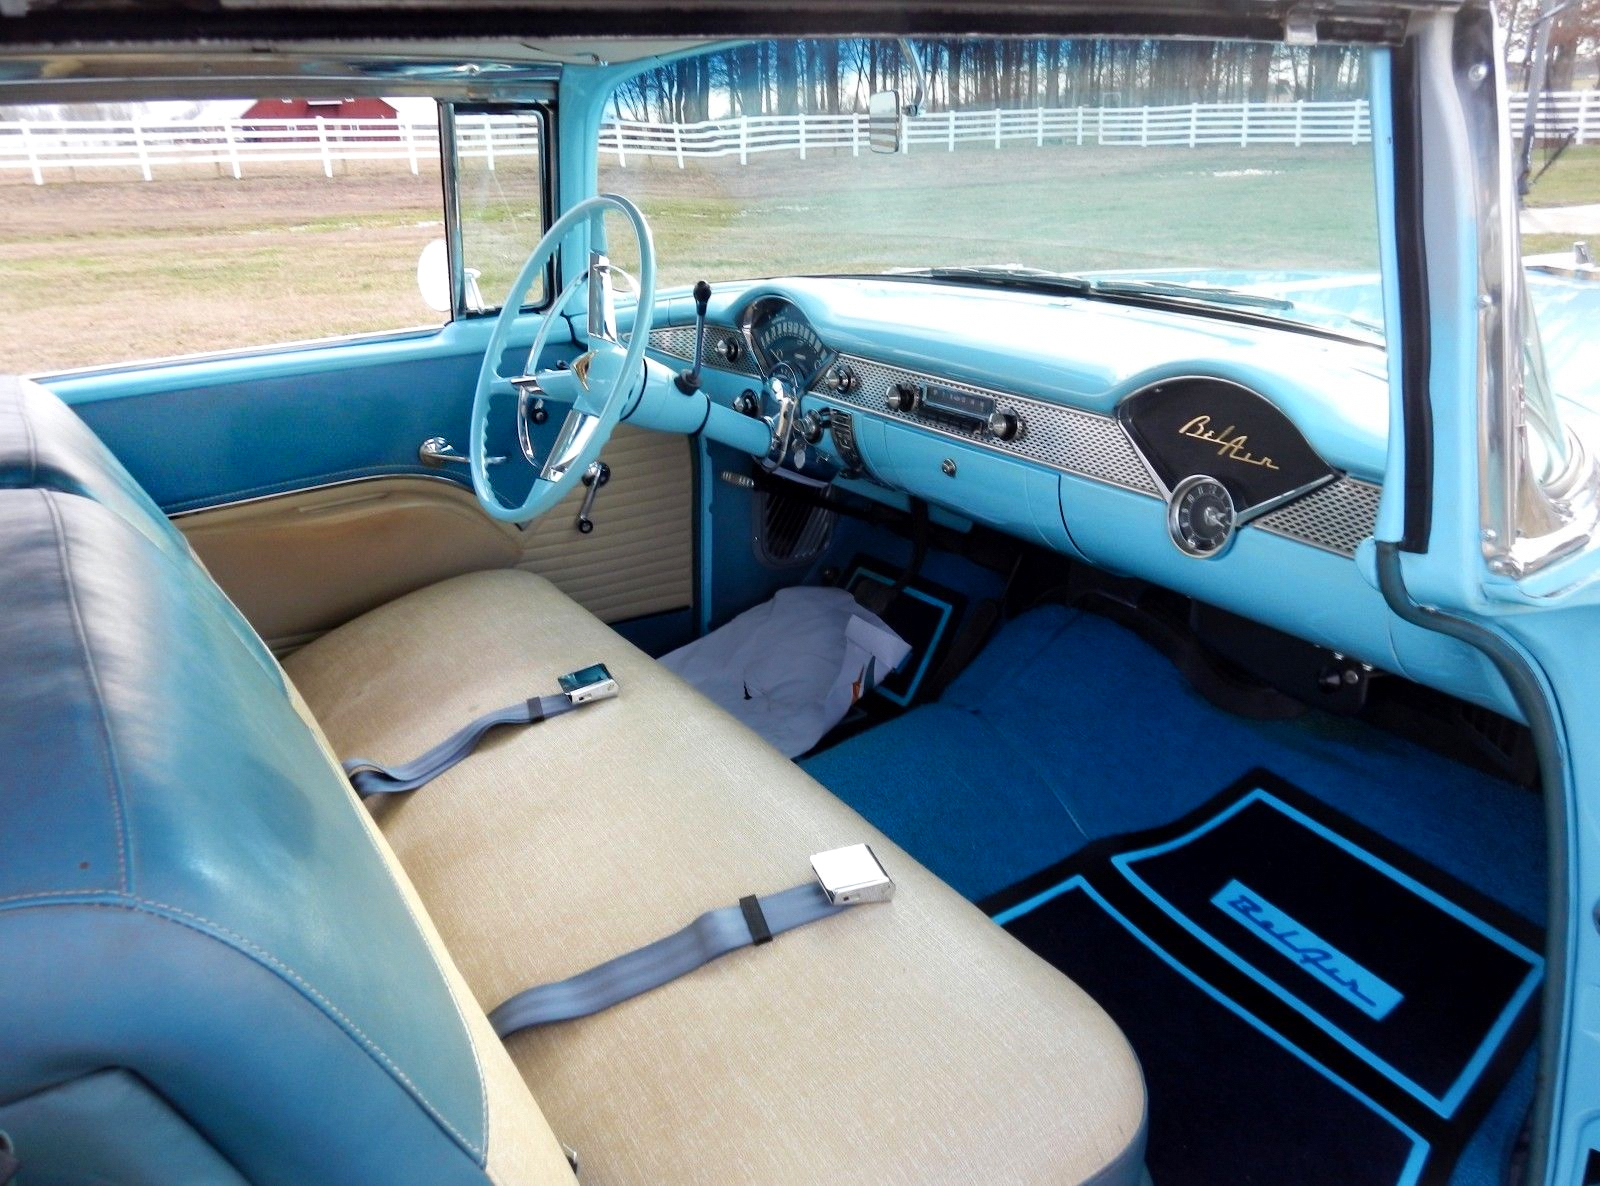 1955 Chevrolet Bel Air Sport Coupe - Skyline Blue / Indian Ivory